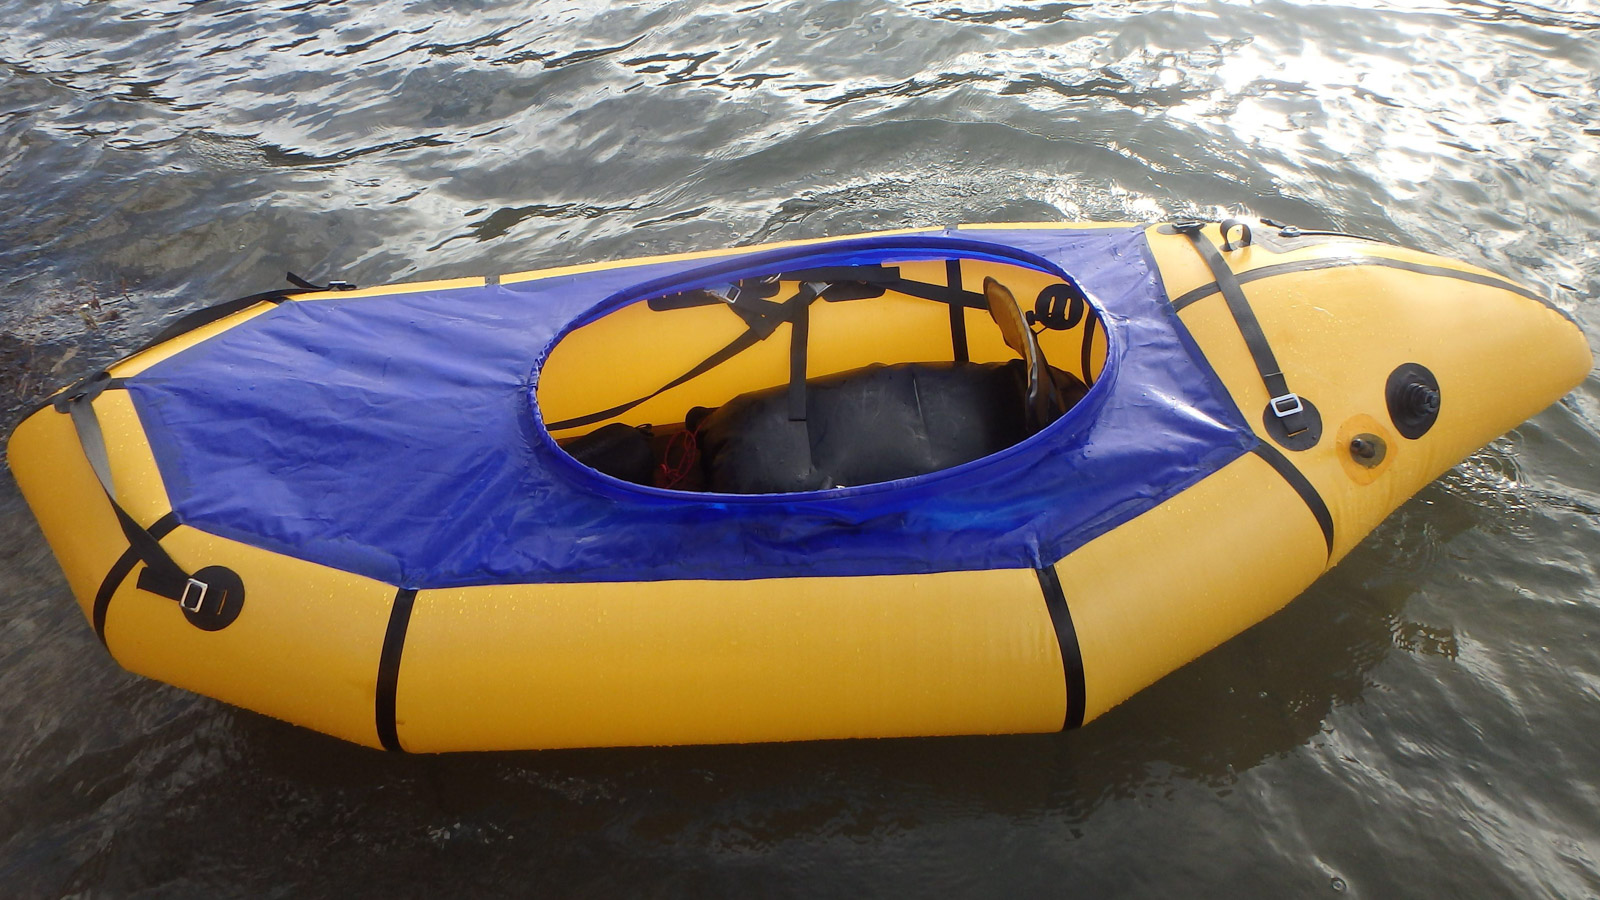 Add a Back Band, Thigh Straps, Spray Deck – DIY Packraft